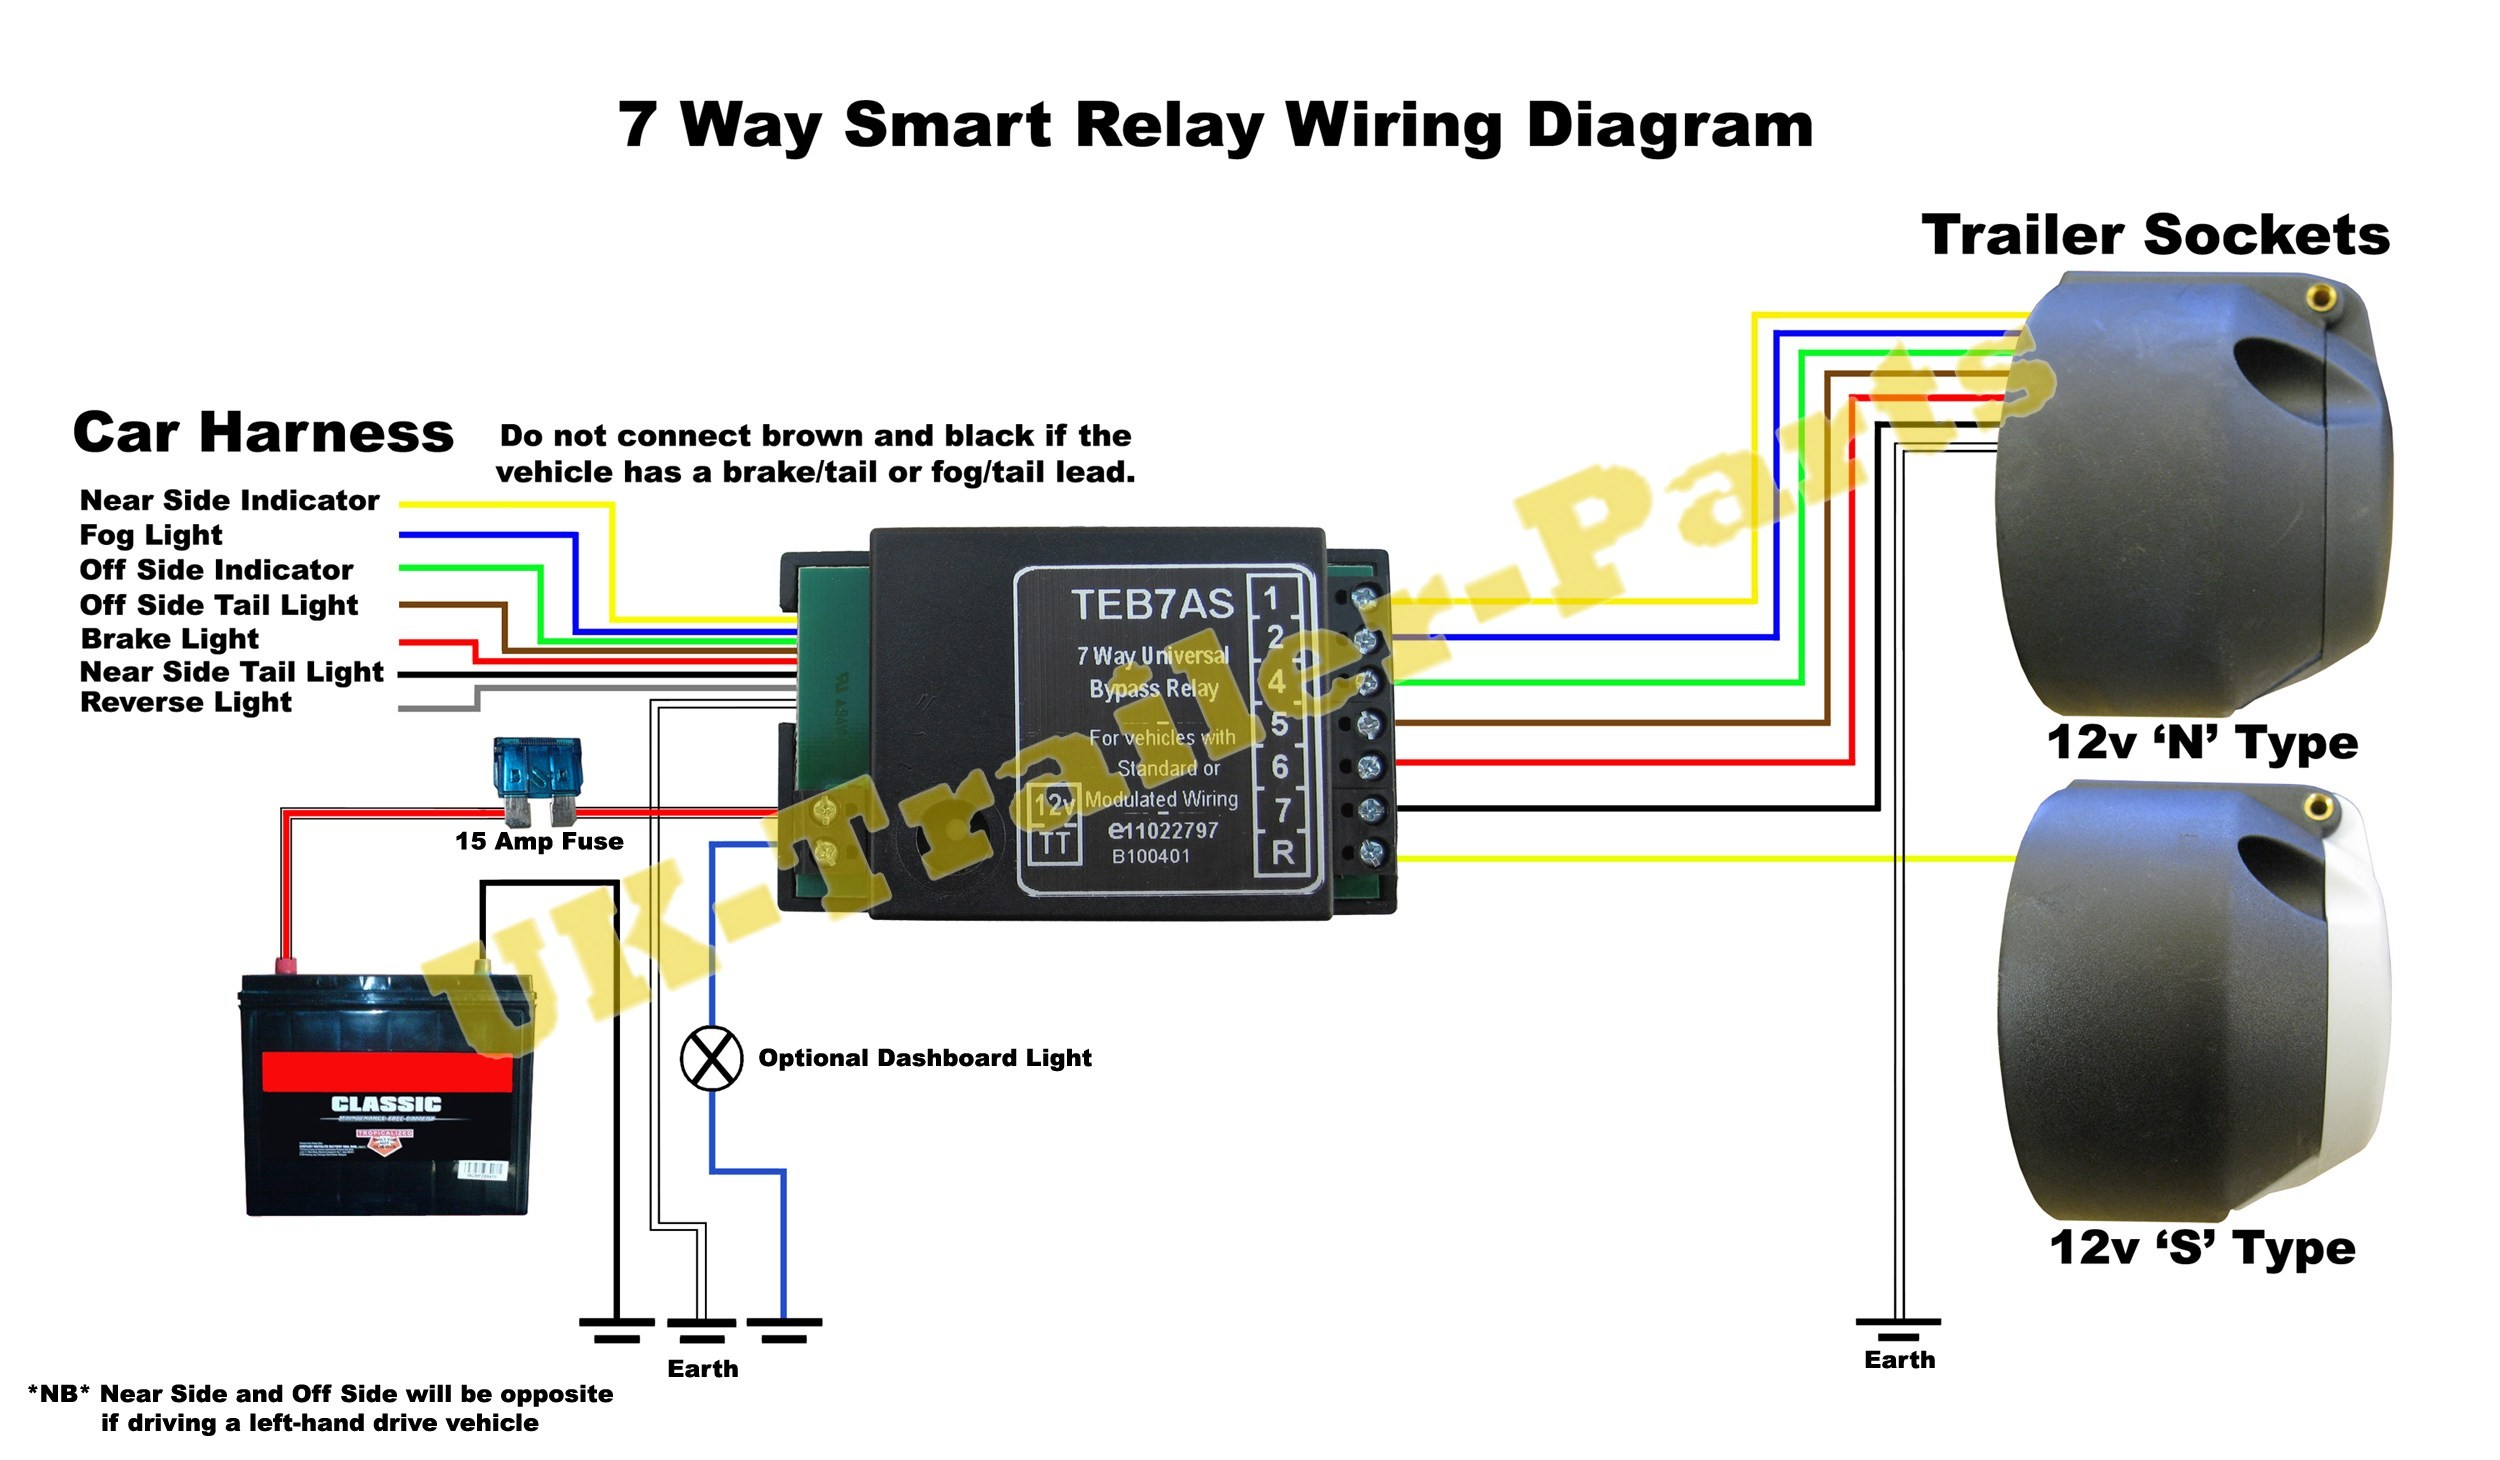 7 Way Truck Wiring Diagram Car Trailer Wiring Diagram Blurts Of 7 Way Truck Wiring Diagram